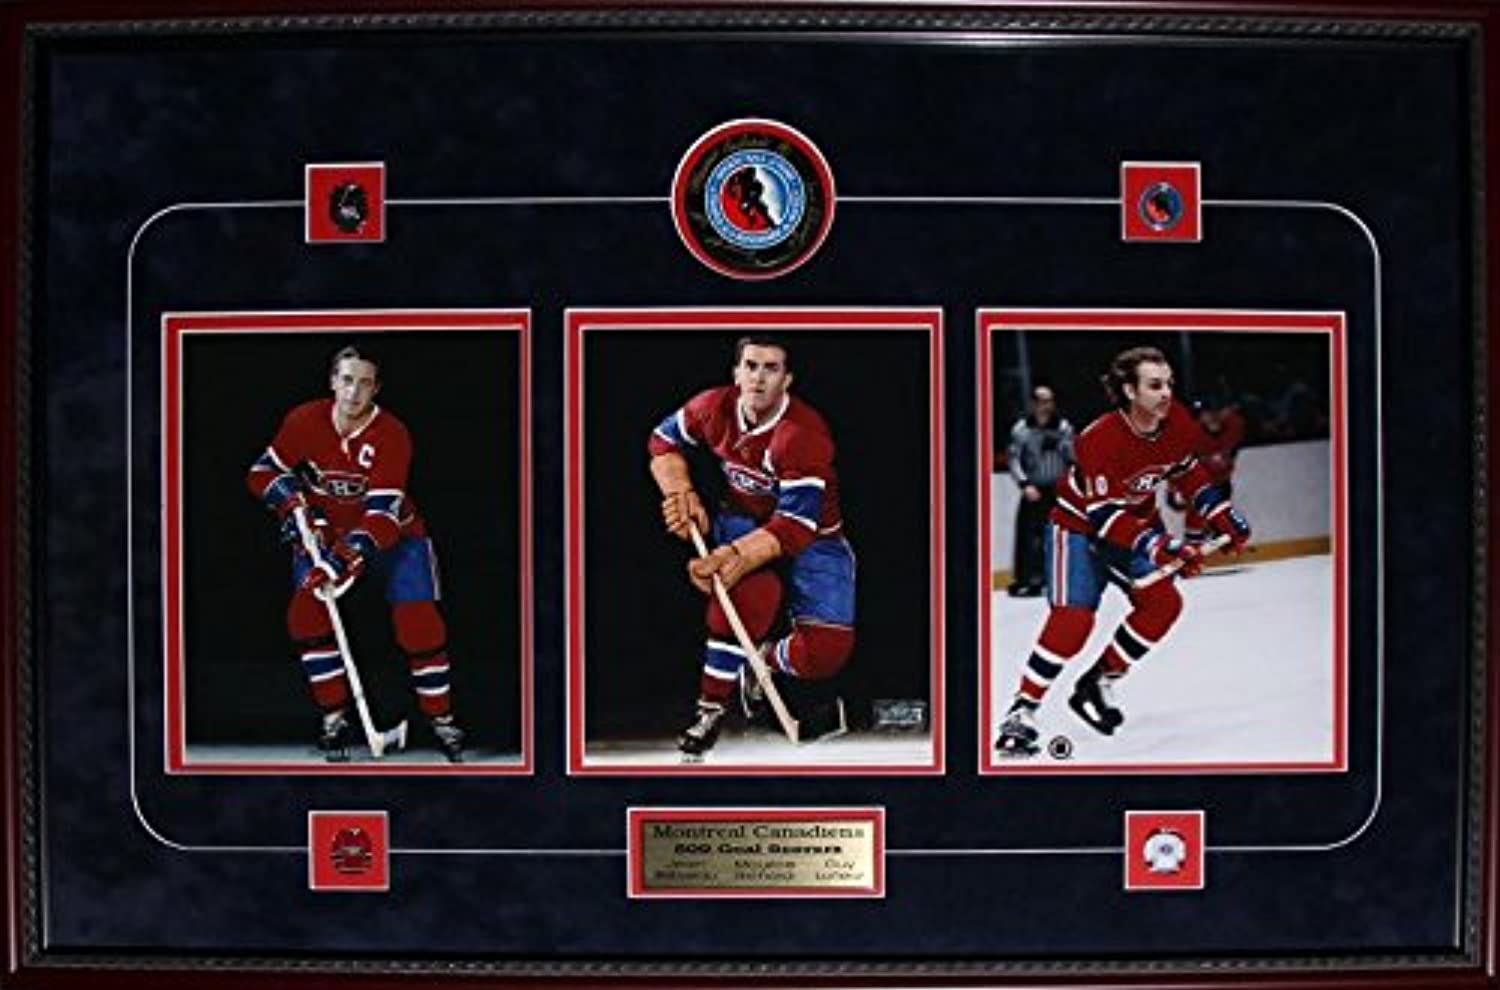 Montreal Canadiens 3 Photo with Puck Signed by Maurice Richard Jean Beliveau Guy Lafleur